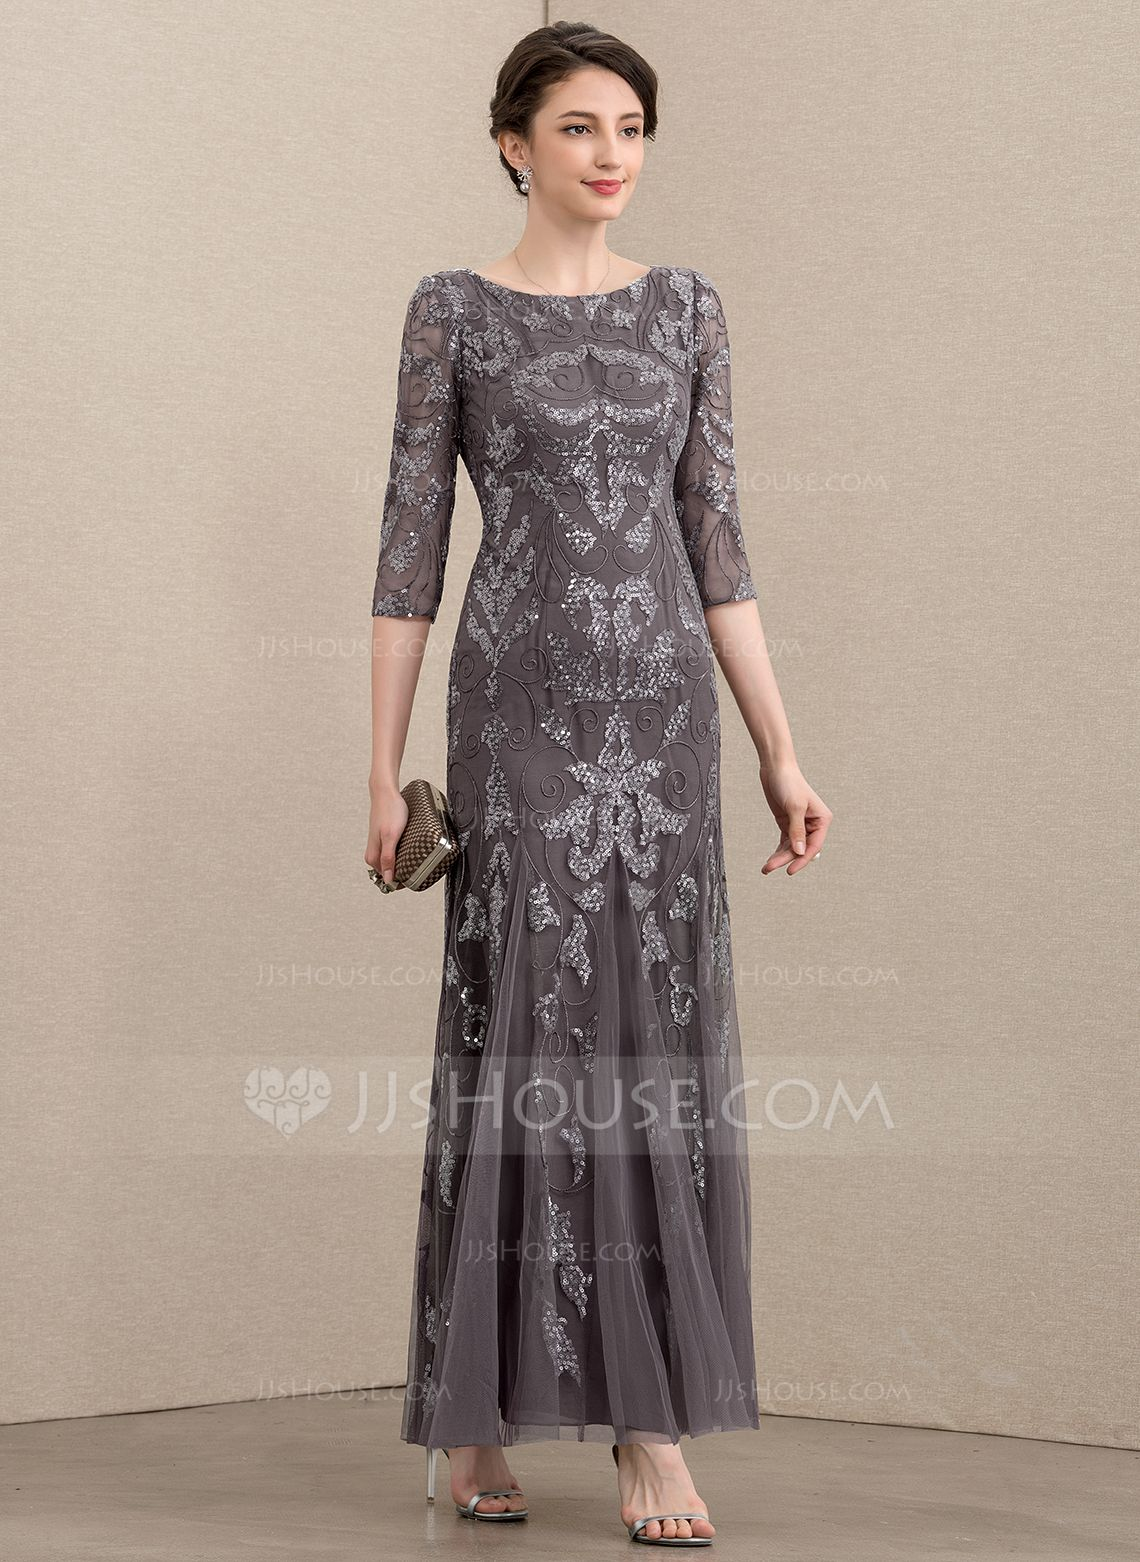 Au 360 00 Sheath Column Scoop Neck Ankle Length Tulle Sequined Mother Of The Bride Dress Jj S House Mother Of The Bride Dresses Beaded Dress Long Mother Of Groom Dresses